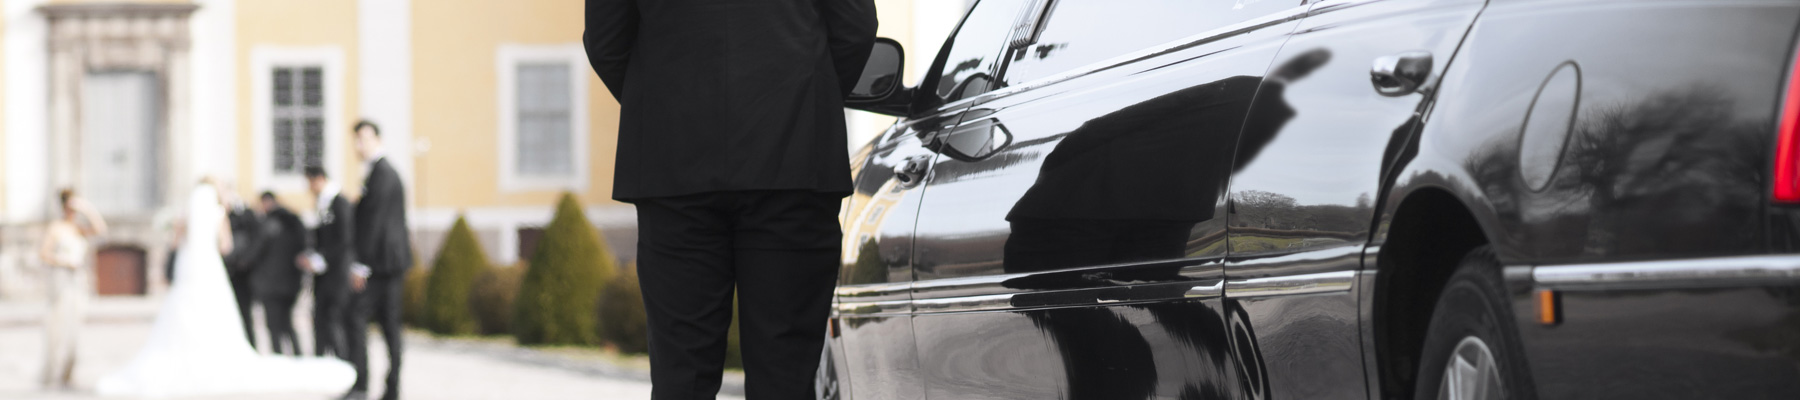 wedding limousine transportation mn